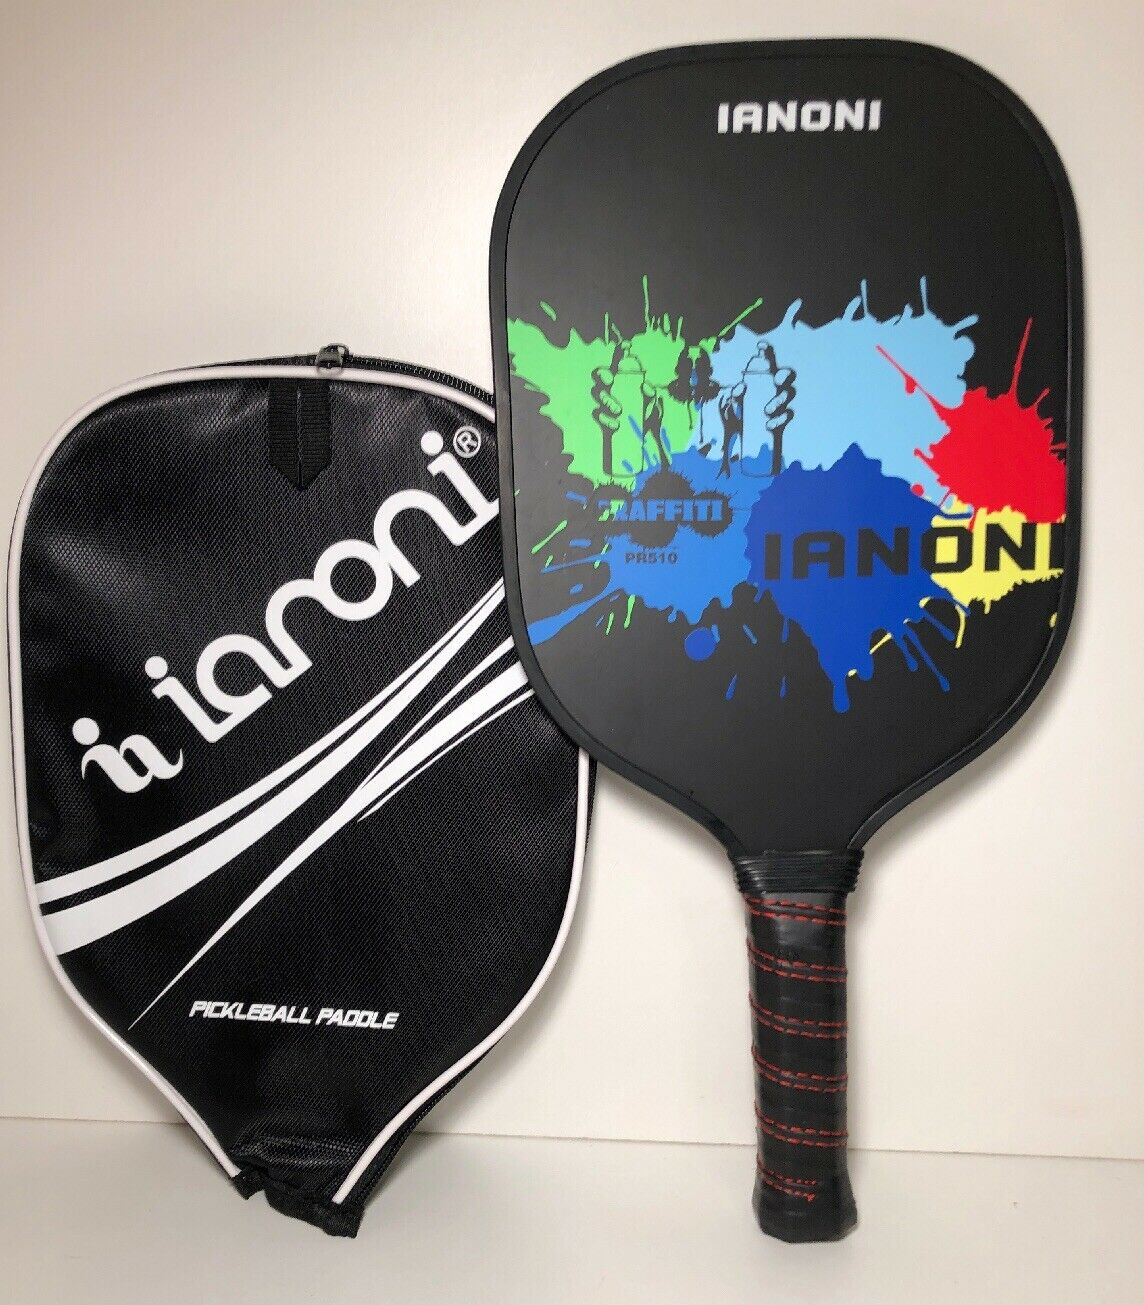 Ianoni Pickleball Paddle PR510 Graphite Composite With Polymer Honeycomb Core